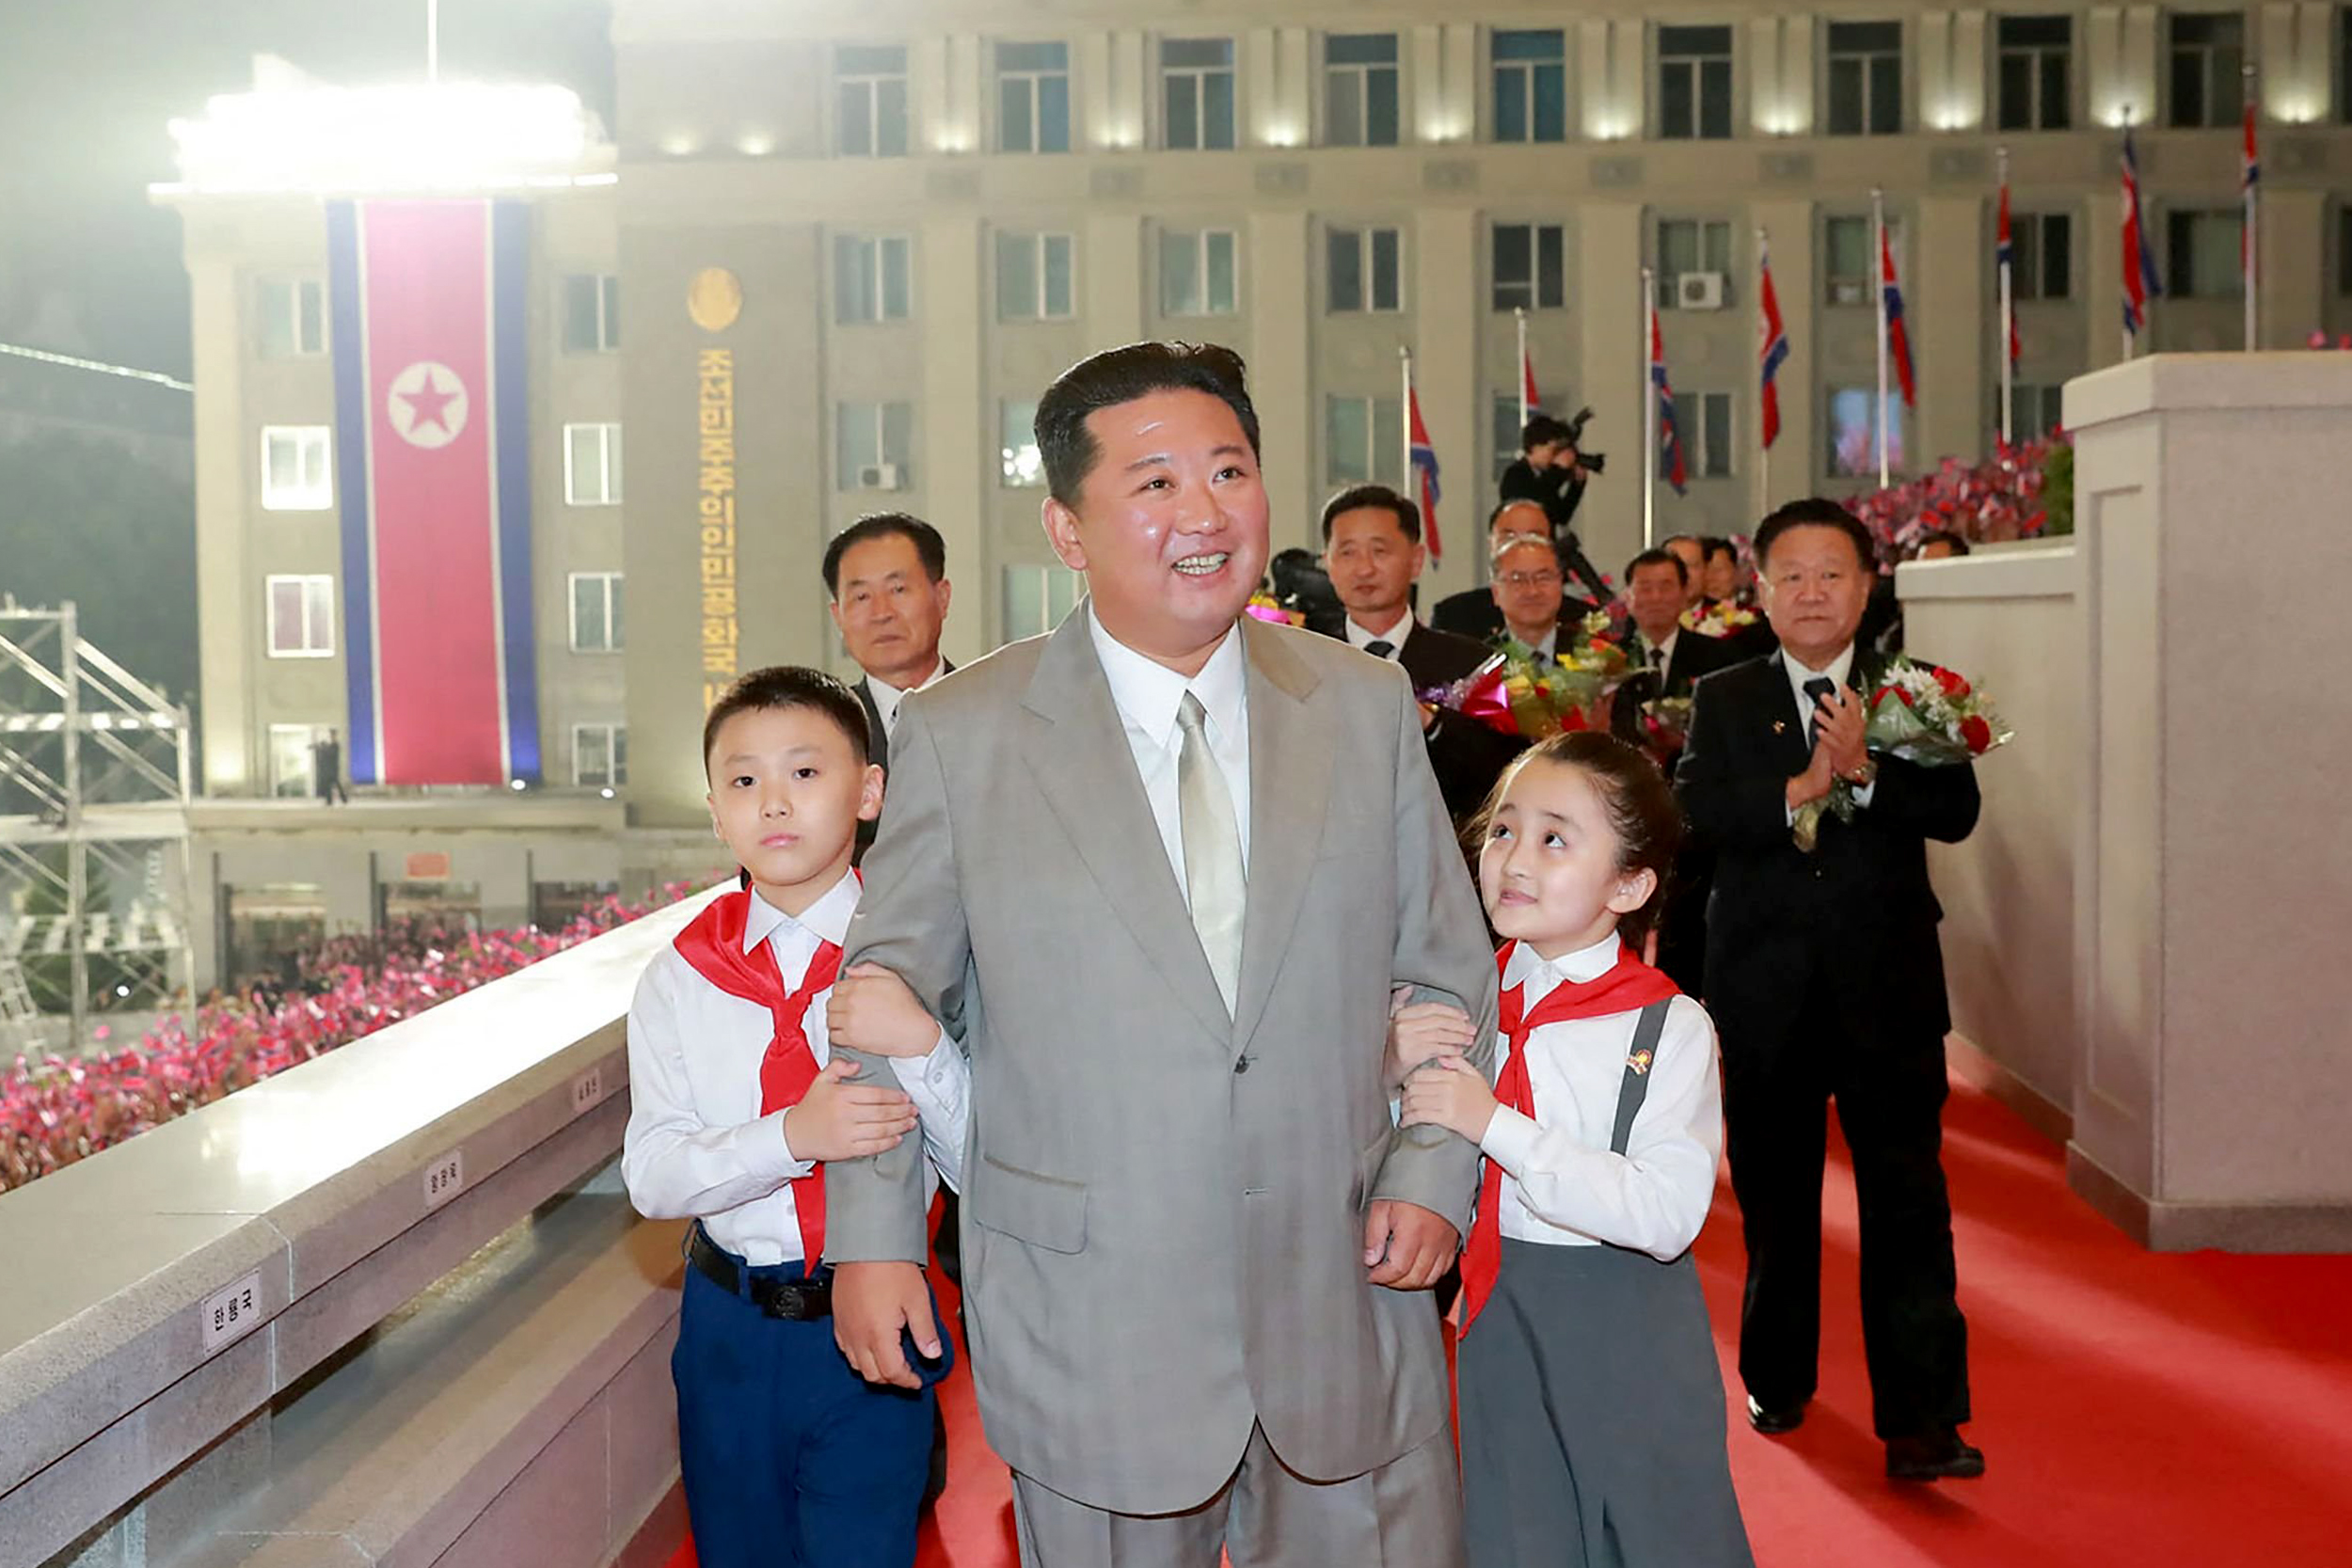 Hazmat suits, no missiles and a slimmer Kim: North Korea holds military parade